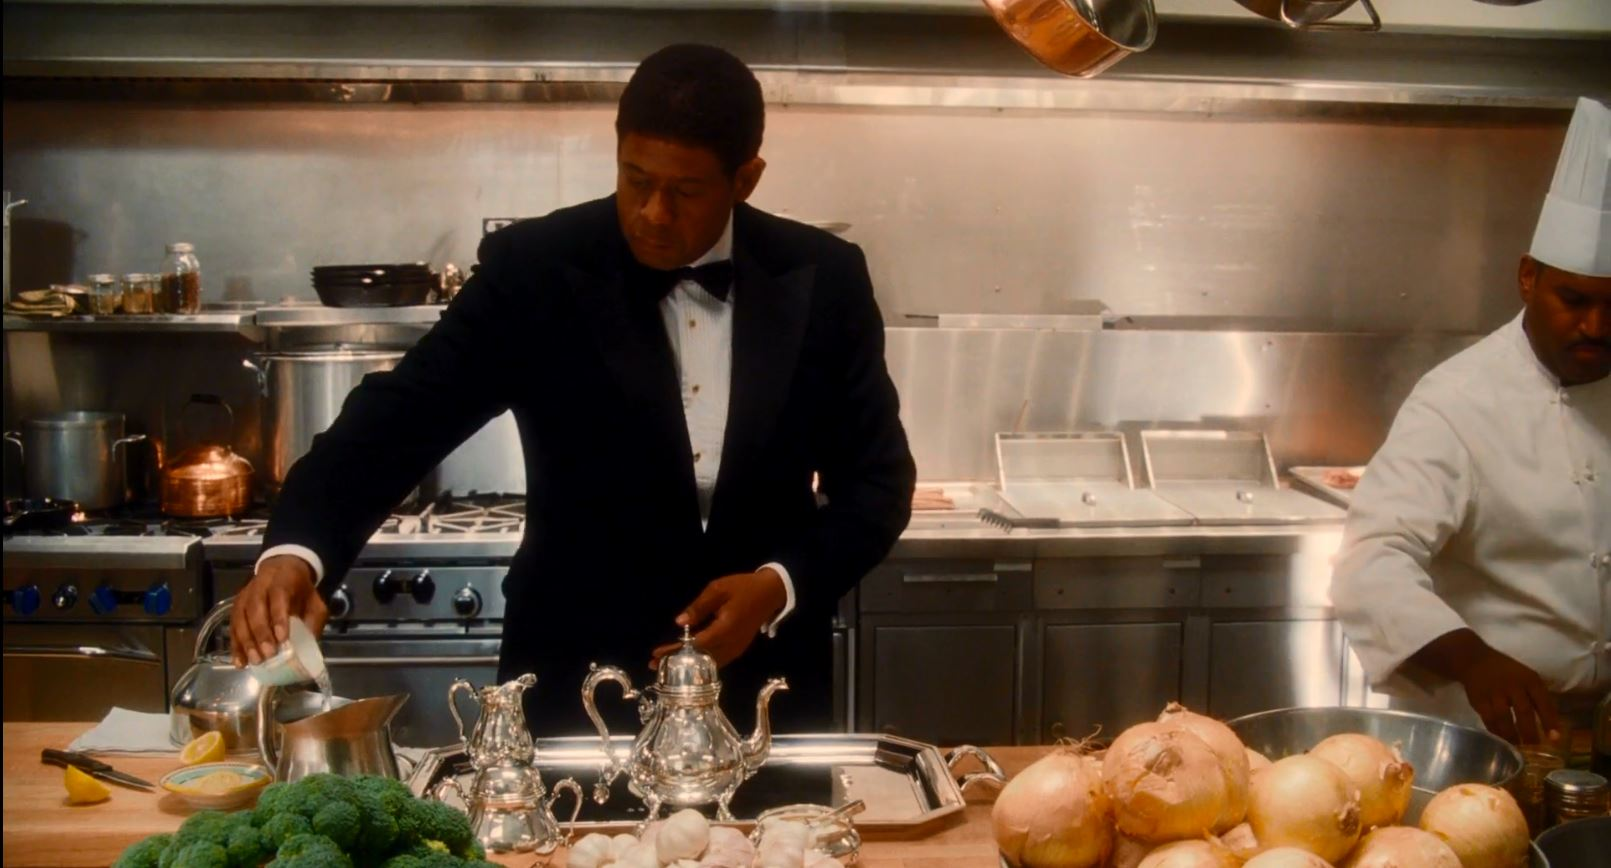 The Butler Casa Blanca 2 - Be There Before